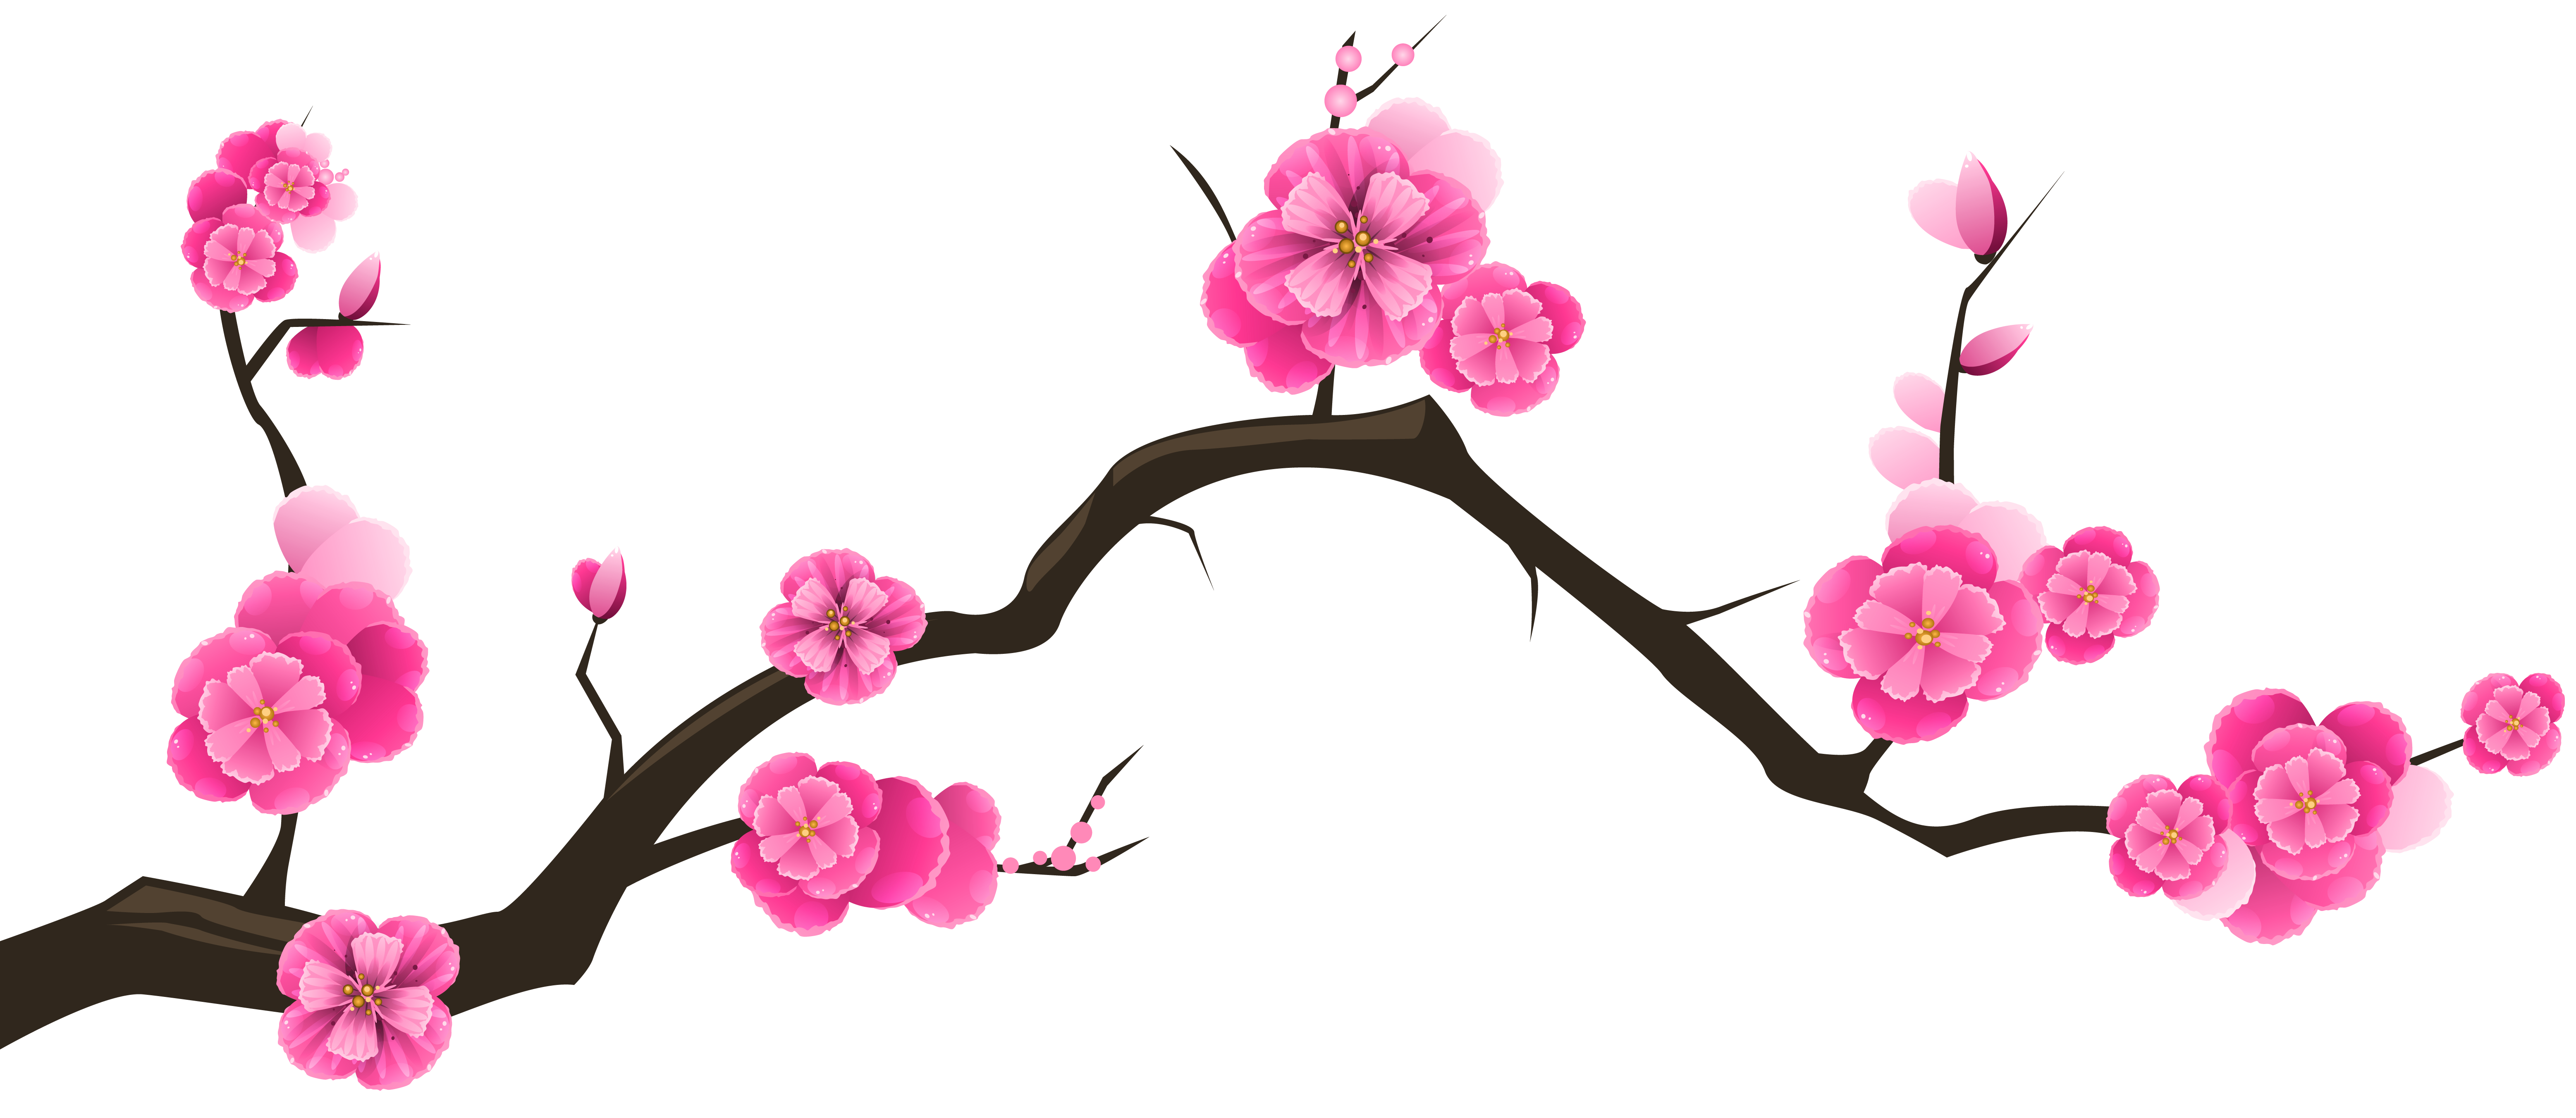 Cherry blossoms clipart vborder image transparent library Cherry blossom borders clipart images gallery for free download ... image transparent library